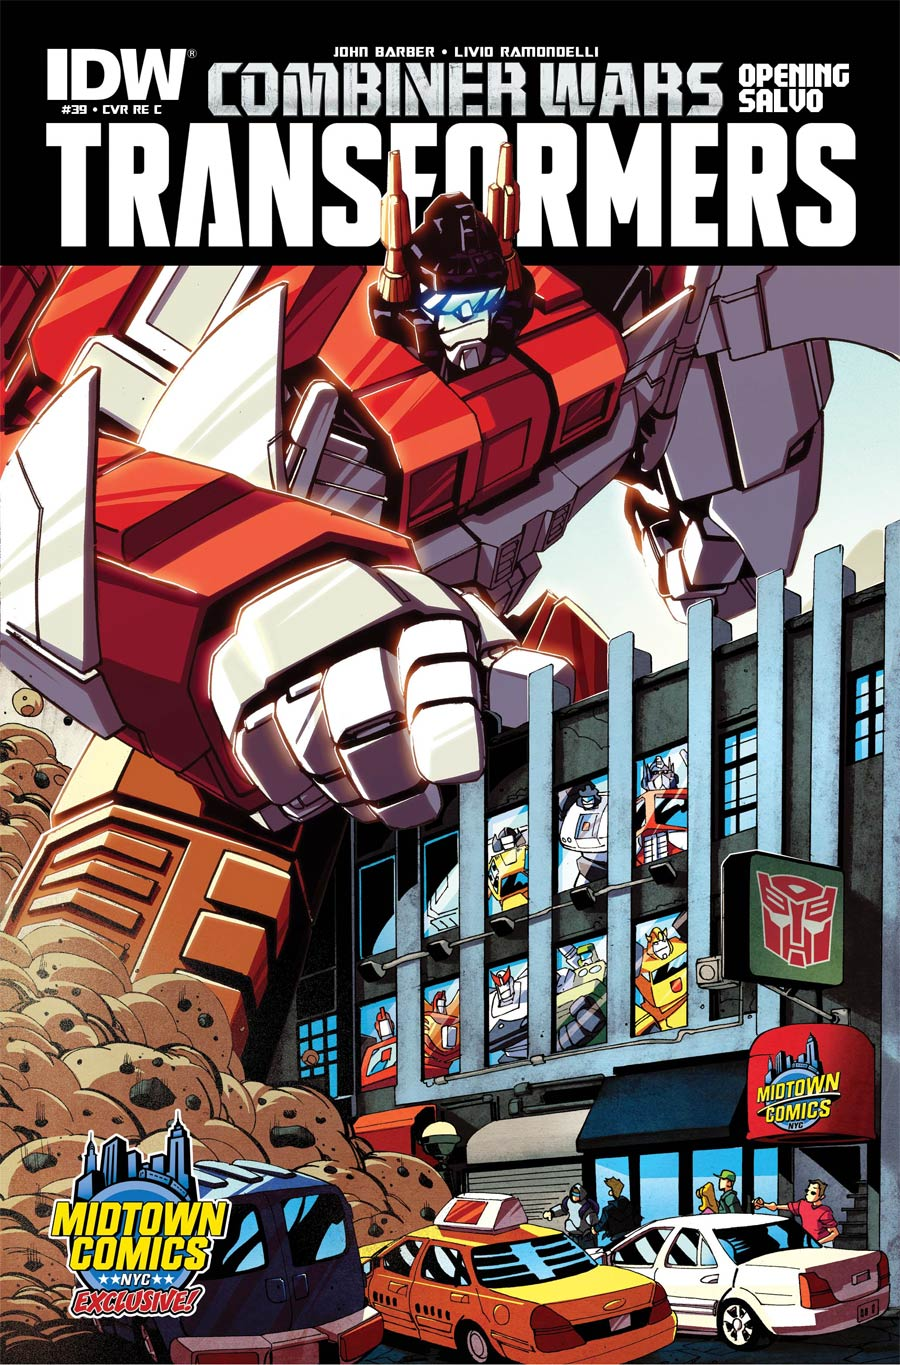 Transformers Vol 3 #39 Cover C Midtown Exclusive Variant Cover (Combiner Wars Opening Salvo)